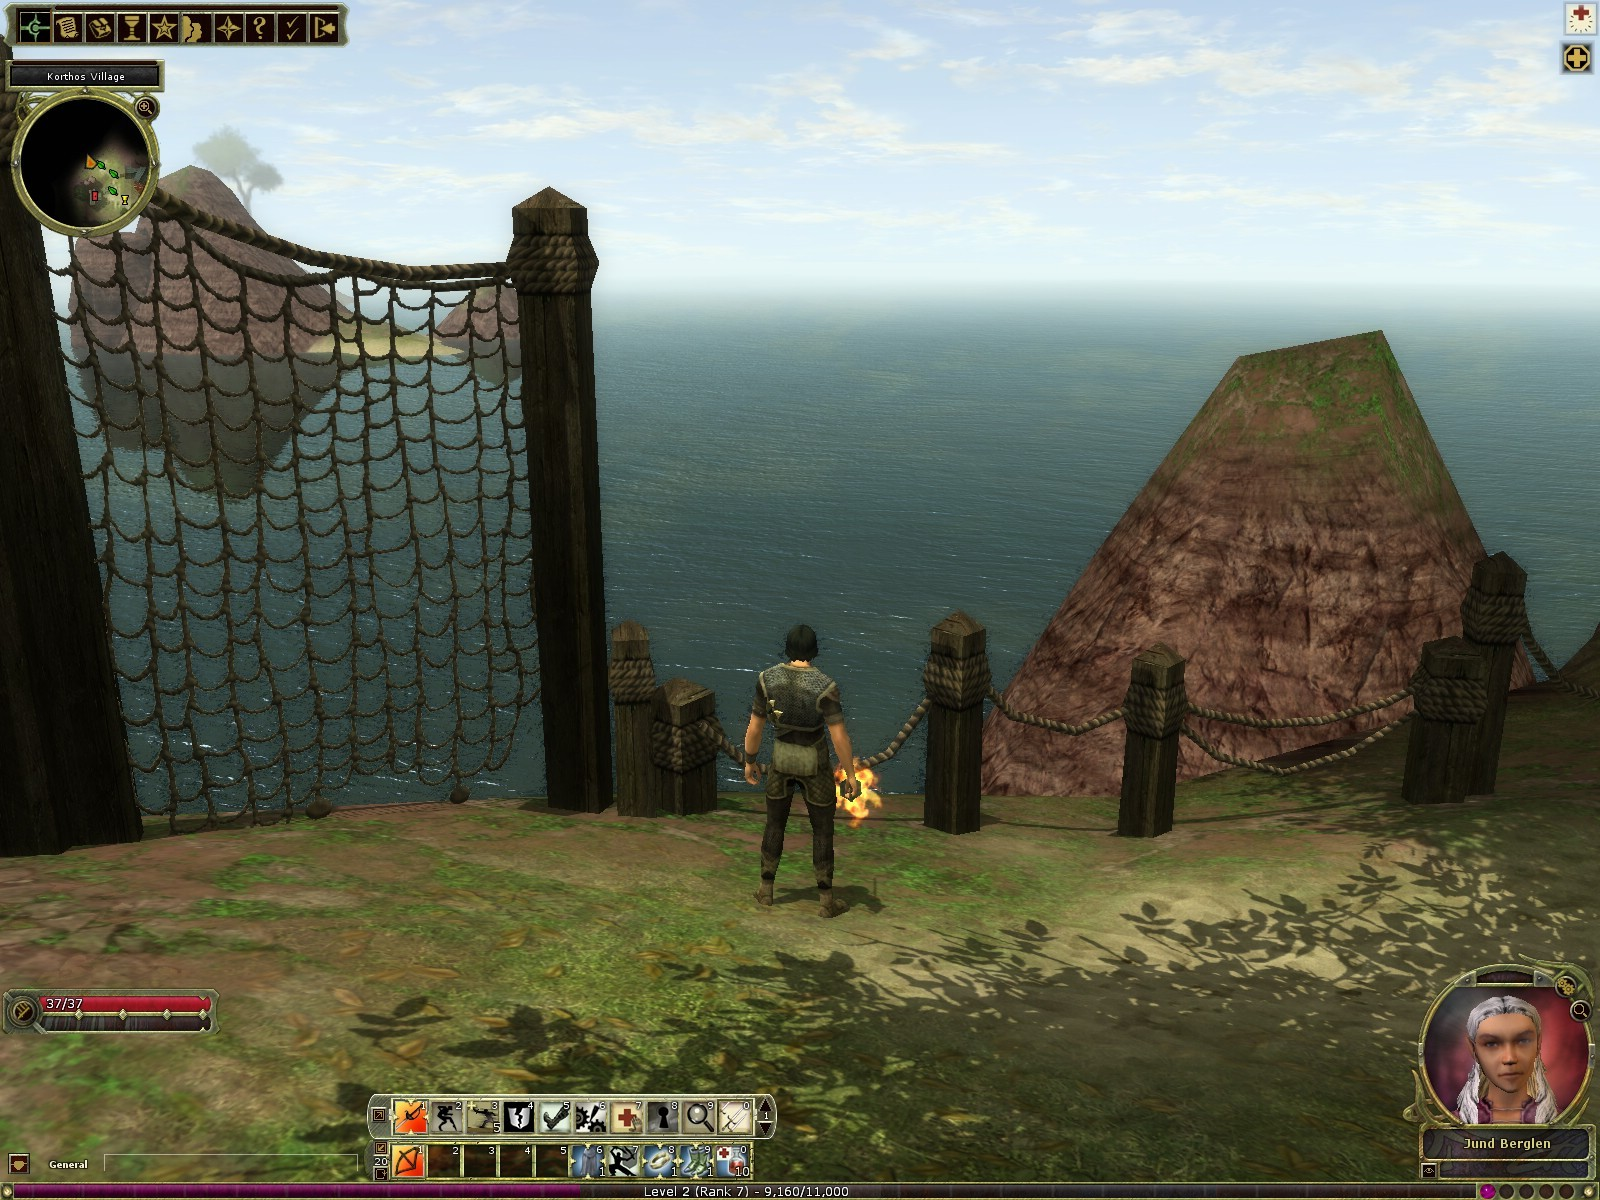 Dungeons & Dragons Online - DDO: Look from Khortos, new player experience (NPE)